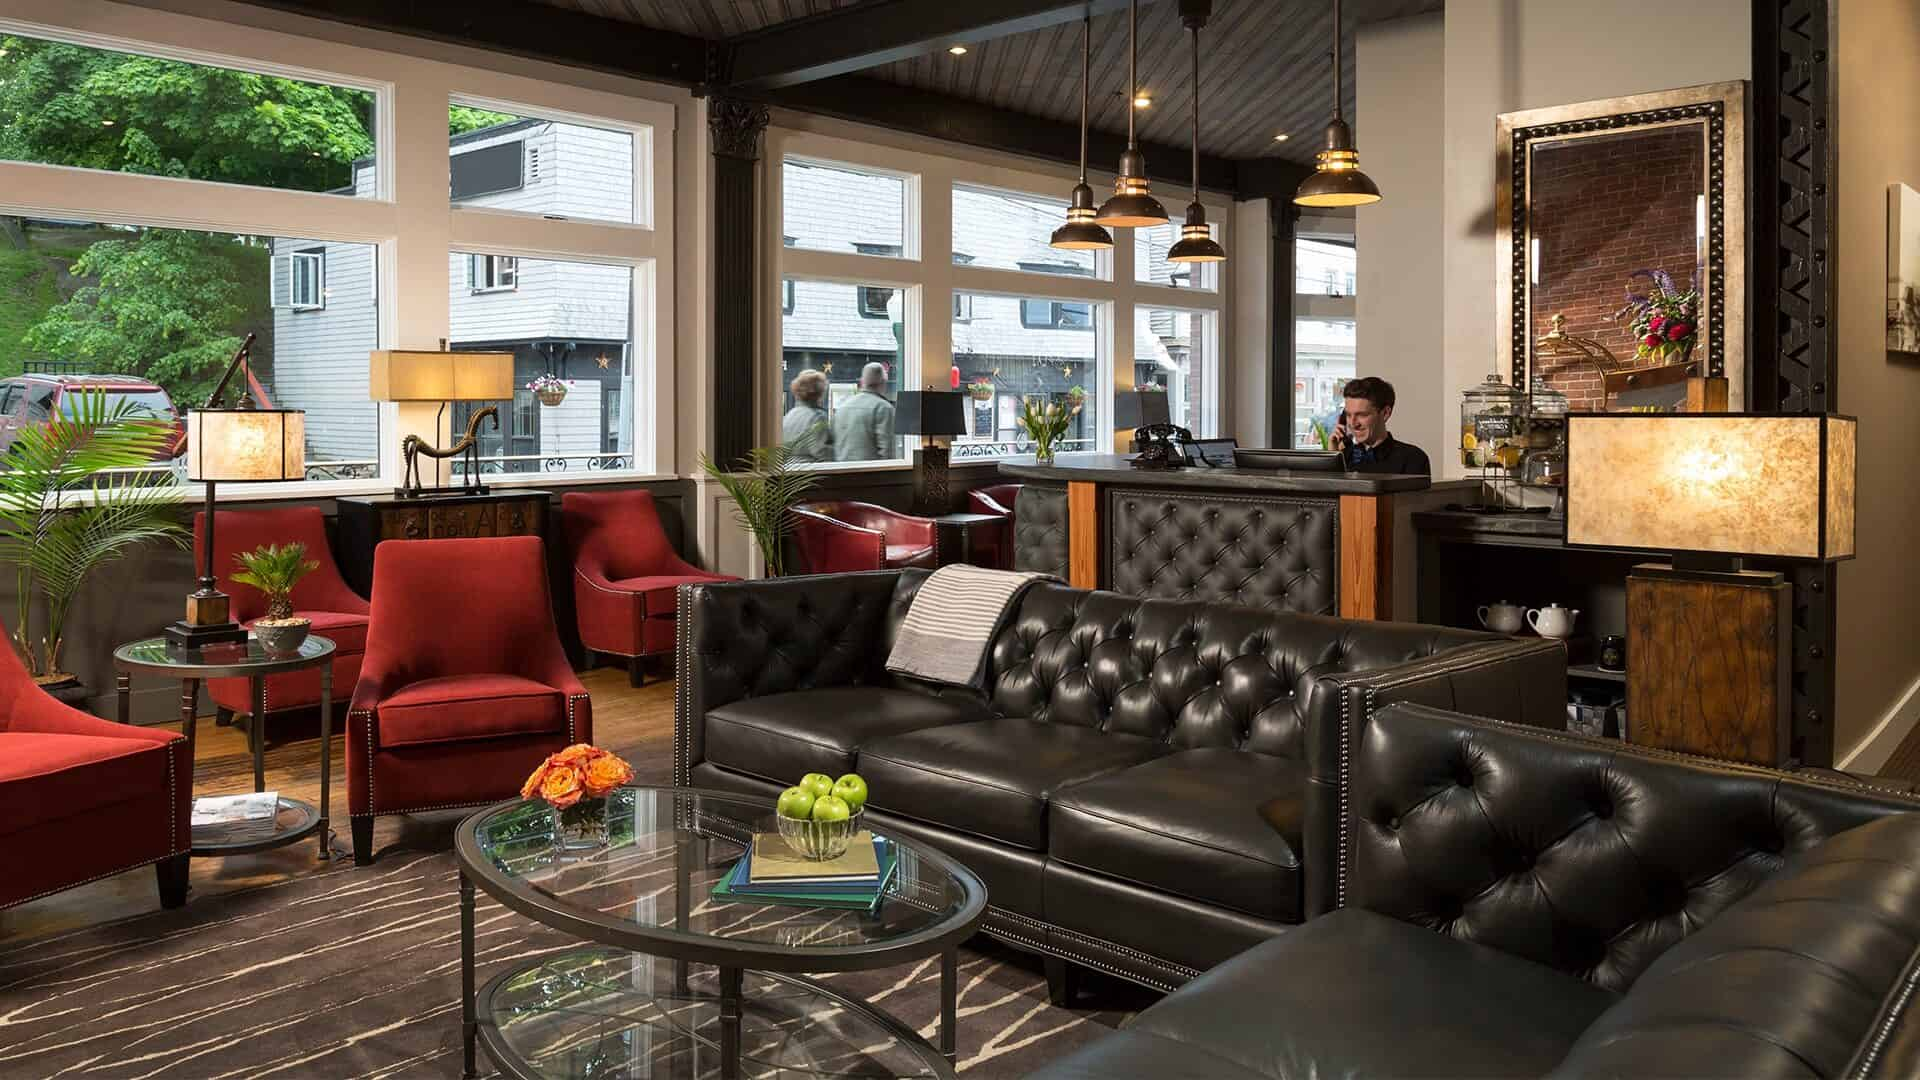 Corcentric Sample Industries Served Restaurants, Hotels and Hospitality